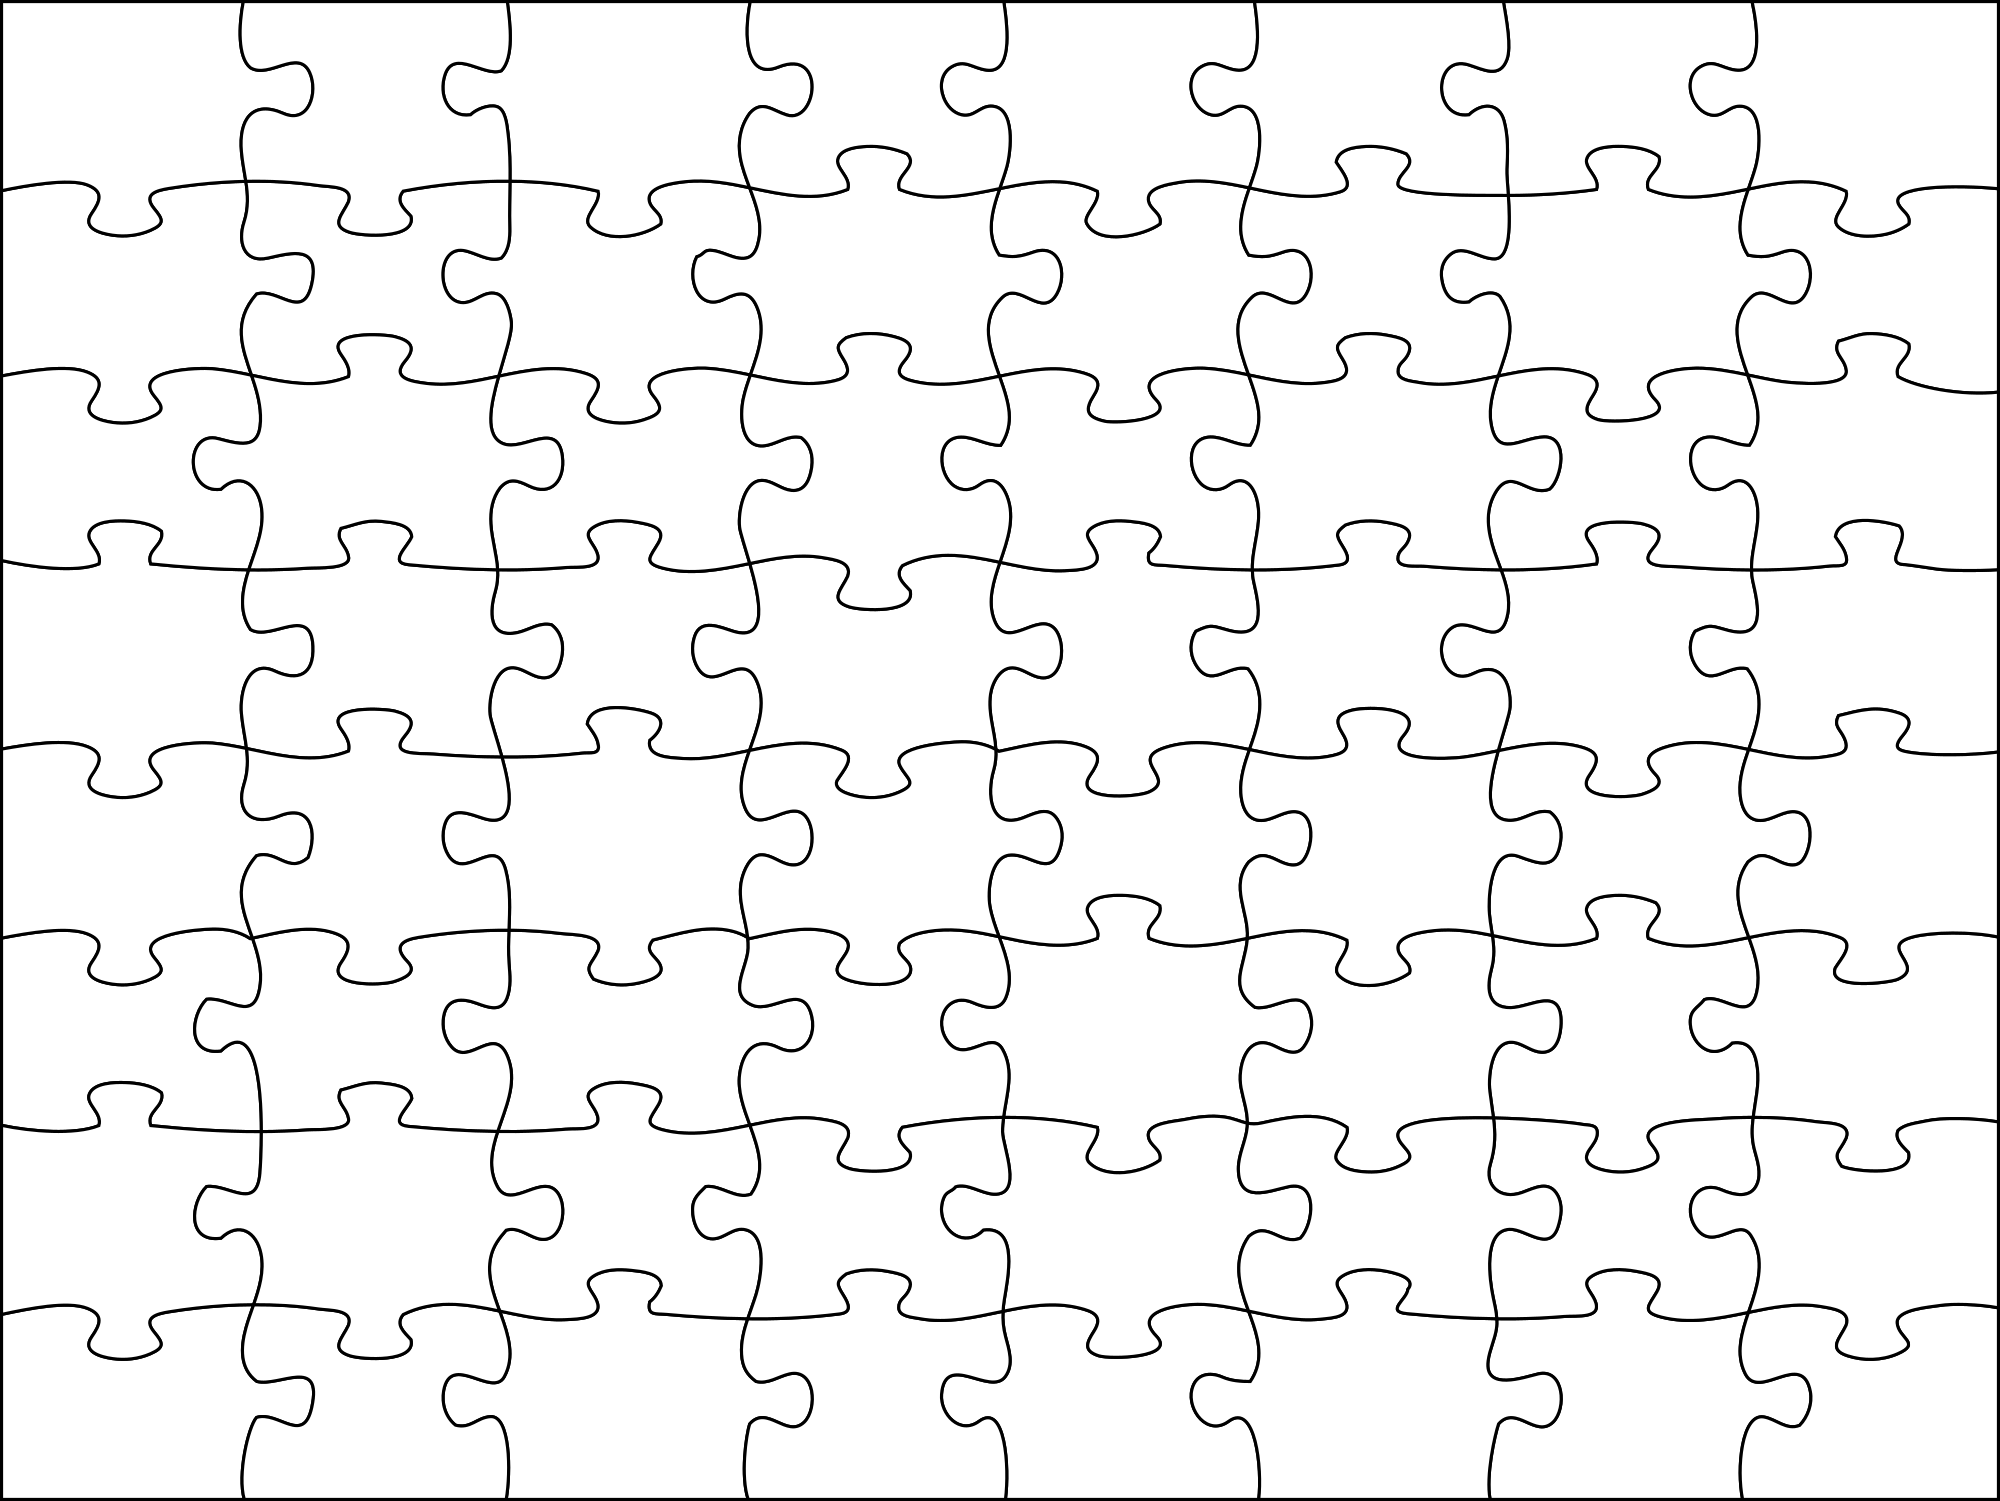 PNG Jigsaw Puzzle Transparent Jigsaw Puzzle.PNG Images..